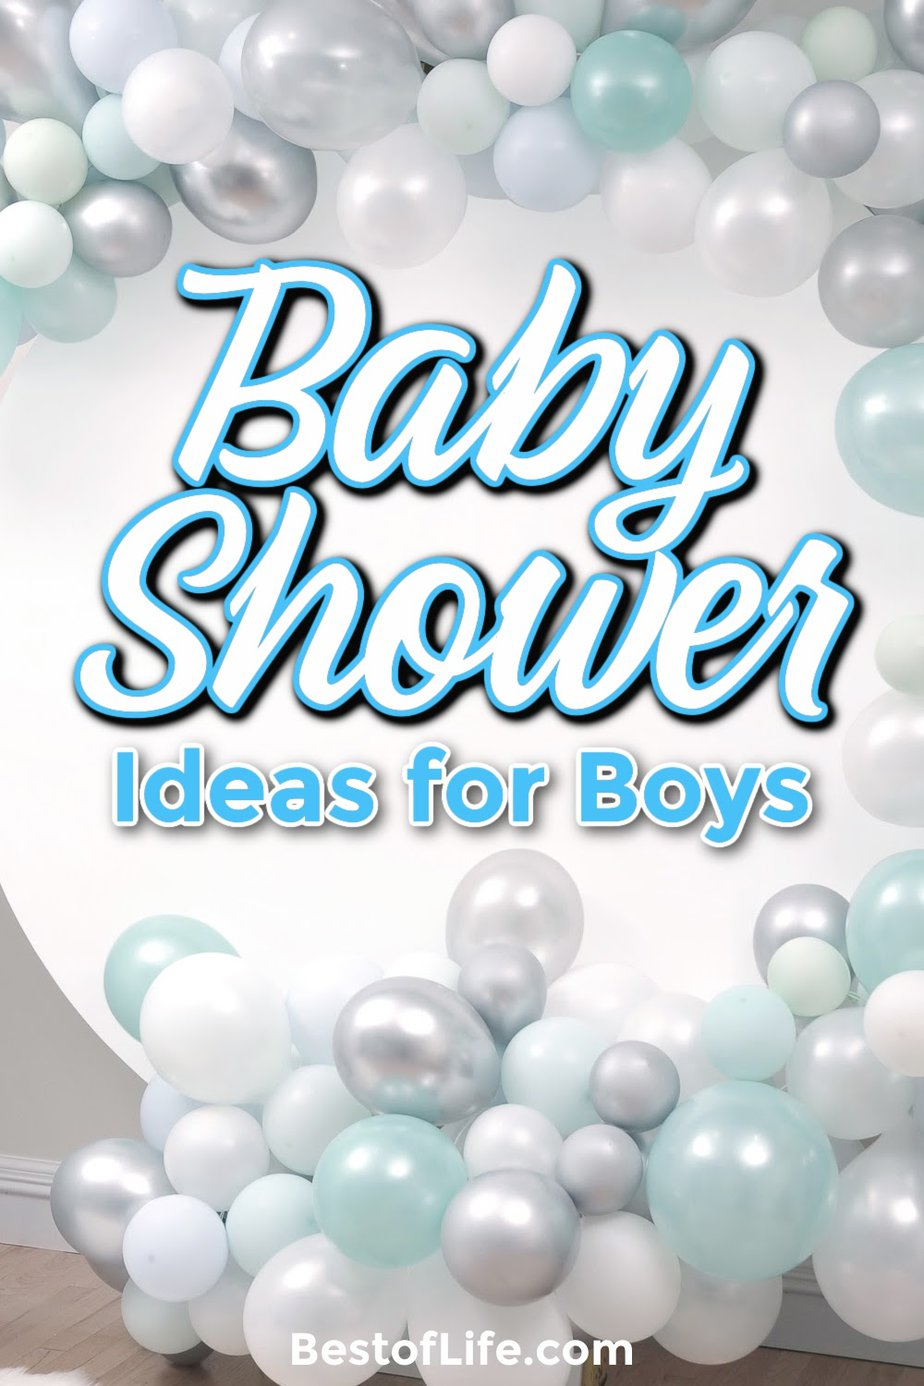 Baby shower ideas for boys will help you throw the ultimate baby shower and may even end up with you being tasked with throwing more than just one baby shower. Games for Baby Showers | Baby Shower Decor Ideas | Food For Baby Showers | Baby Shower Recipes | DIY Baby Shower Decor | Fun Games for Baby Showers #babyshower #babyshowerideas via @thebestoflife